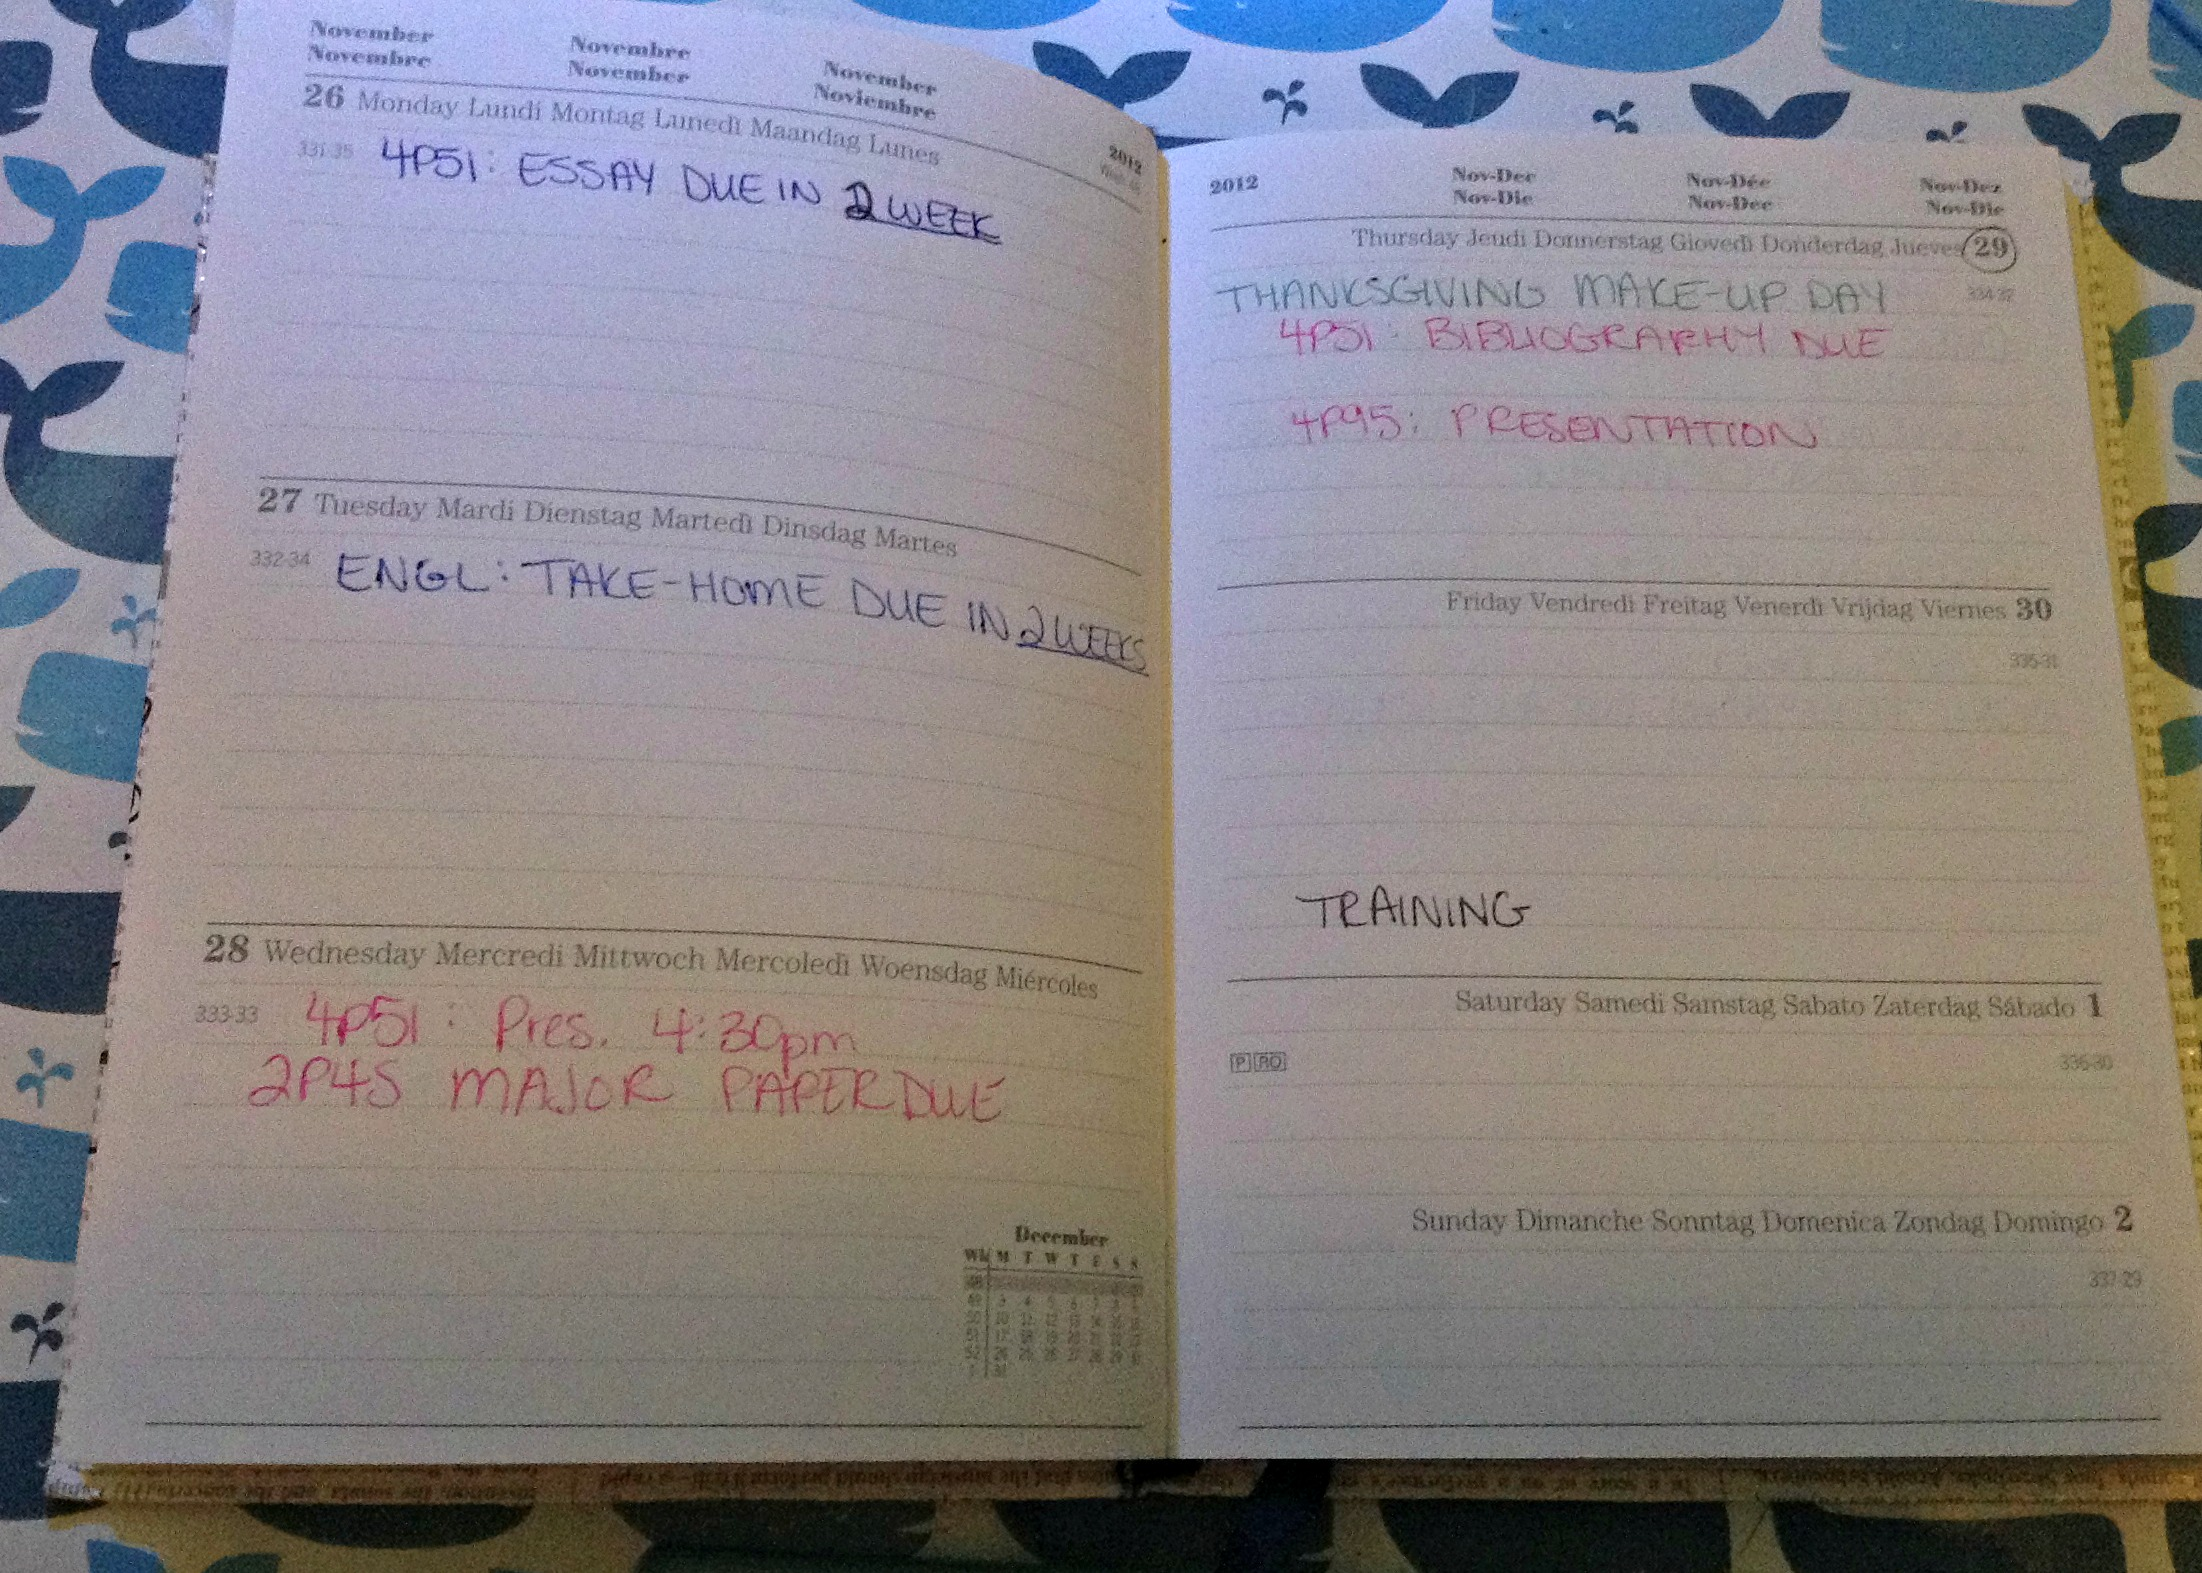 Organize Your School Planner with GagenGirls.com, a great back-to-school article